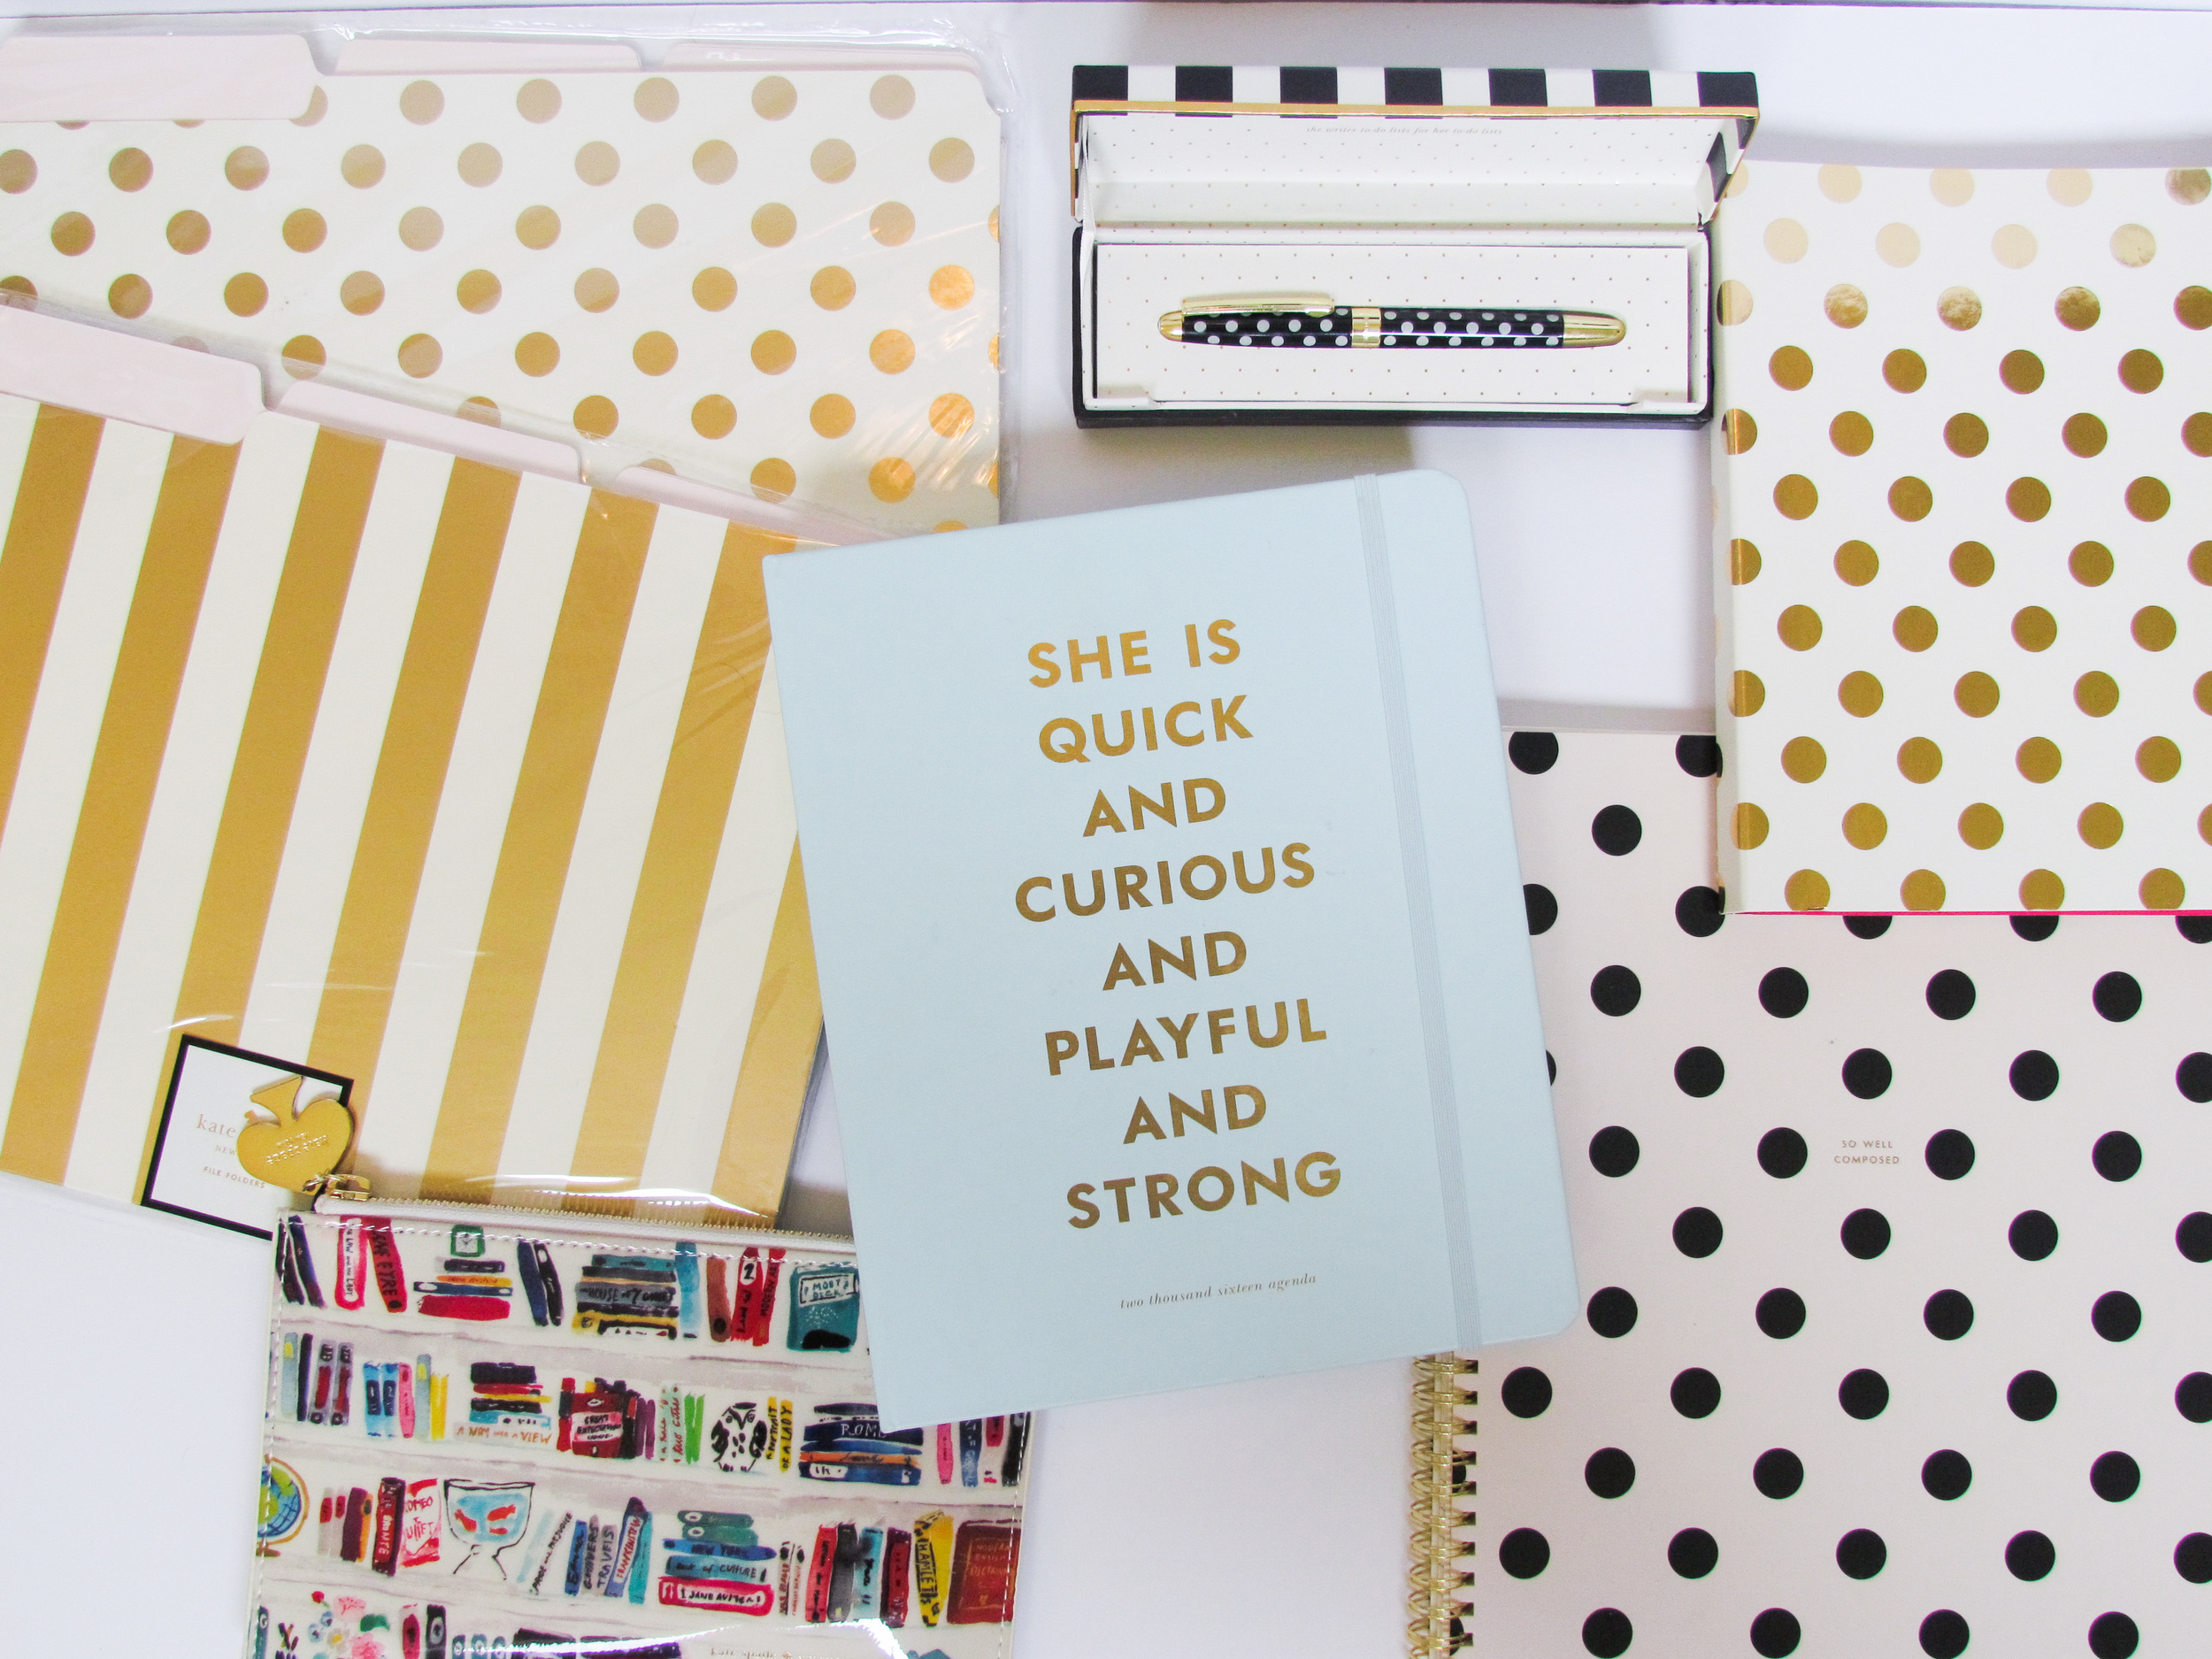 Kate Spade gold foil file folders, light blue agenda, book pencil bag, polka dot notebooks, polka dot pen